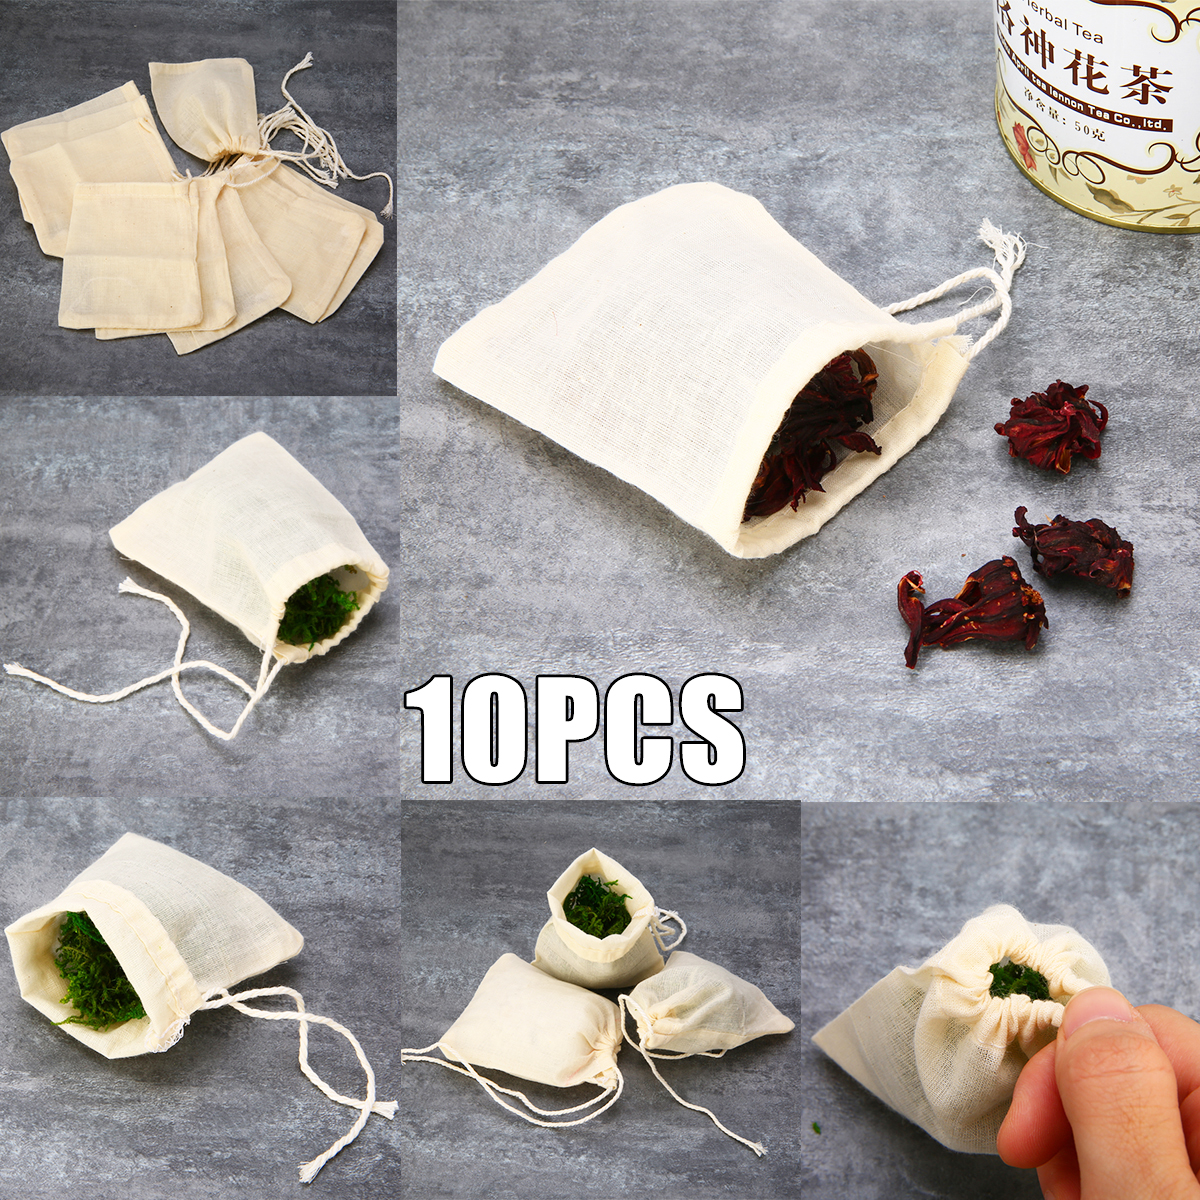 10pcs Tea Maker Cloth Filter Bag Cotton Muslin Drawstring Strainer Tea Spice Food Separate Filter Box For Drinkware